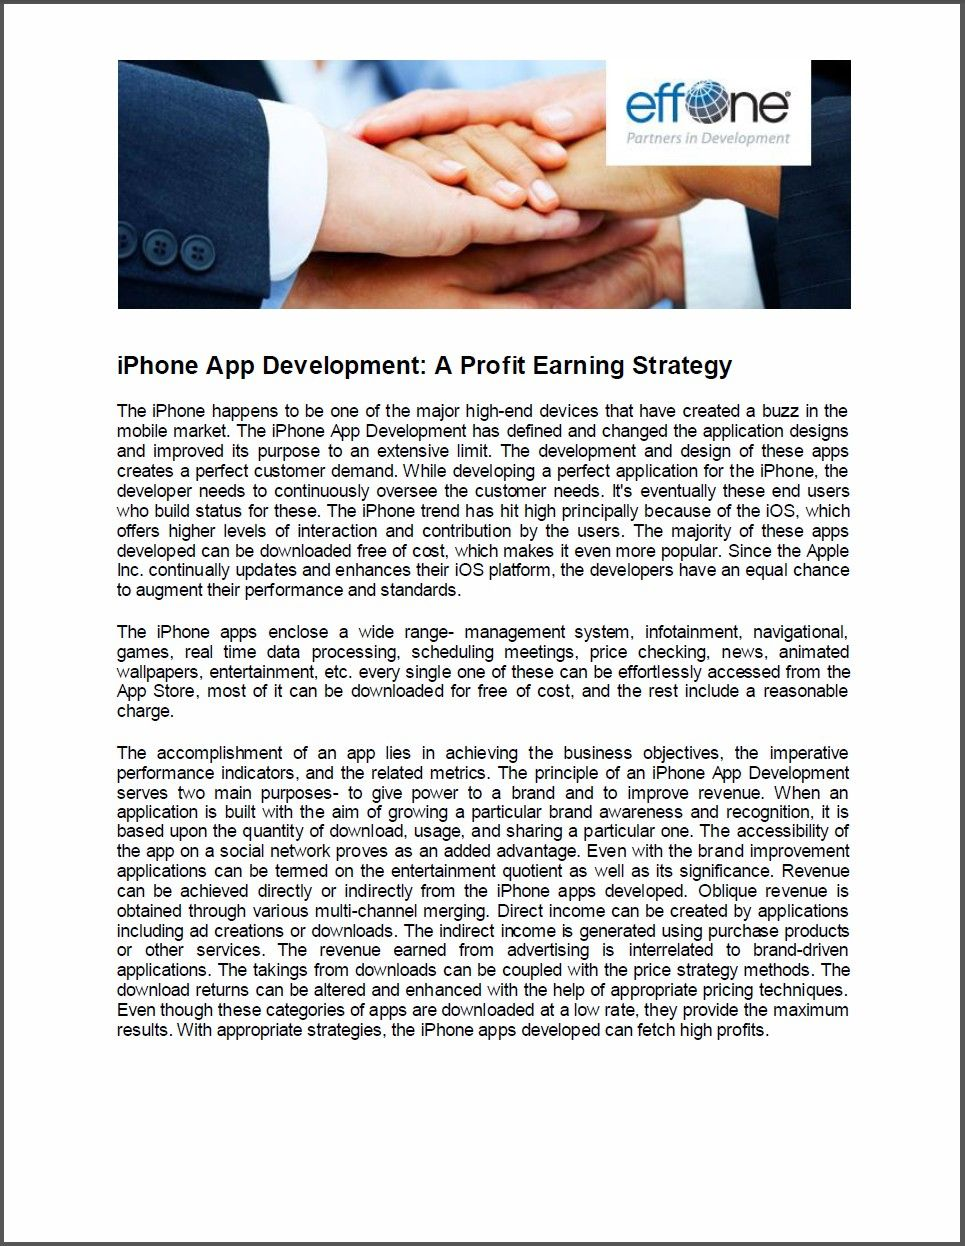 iPhone App Development - A Profit Earning Strategy